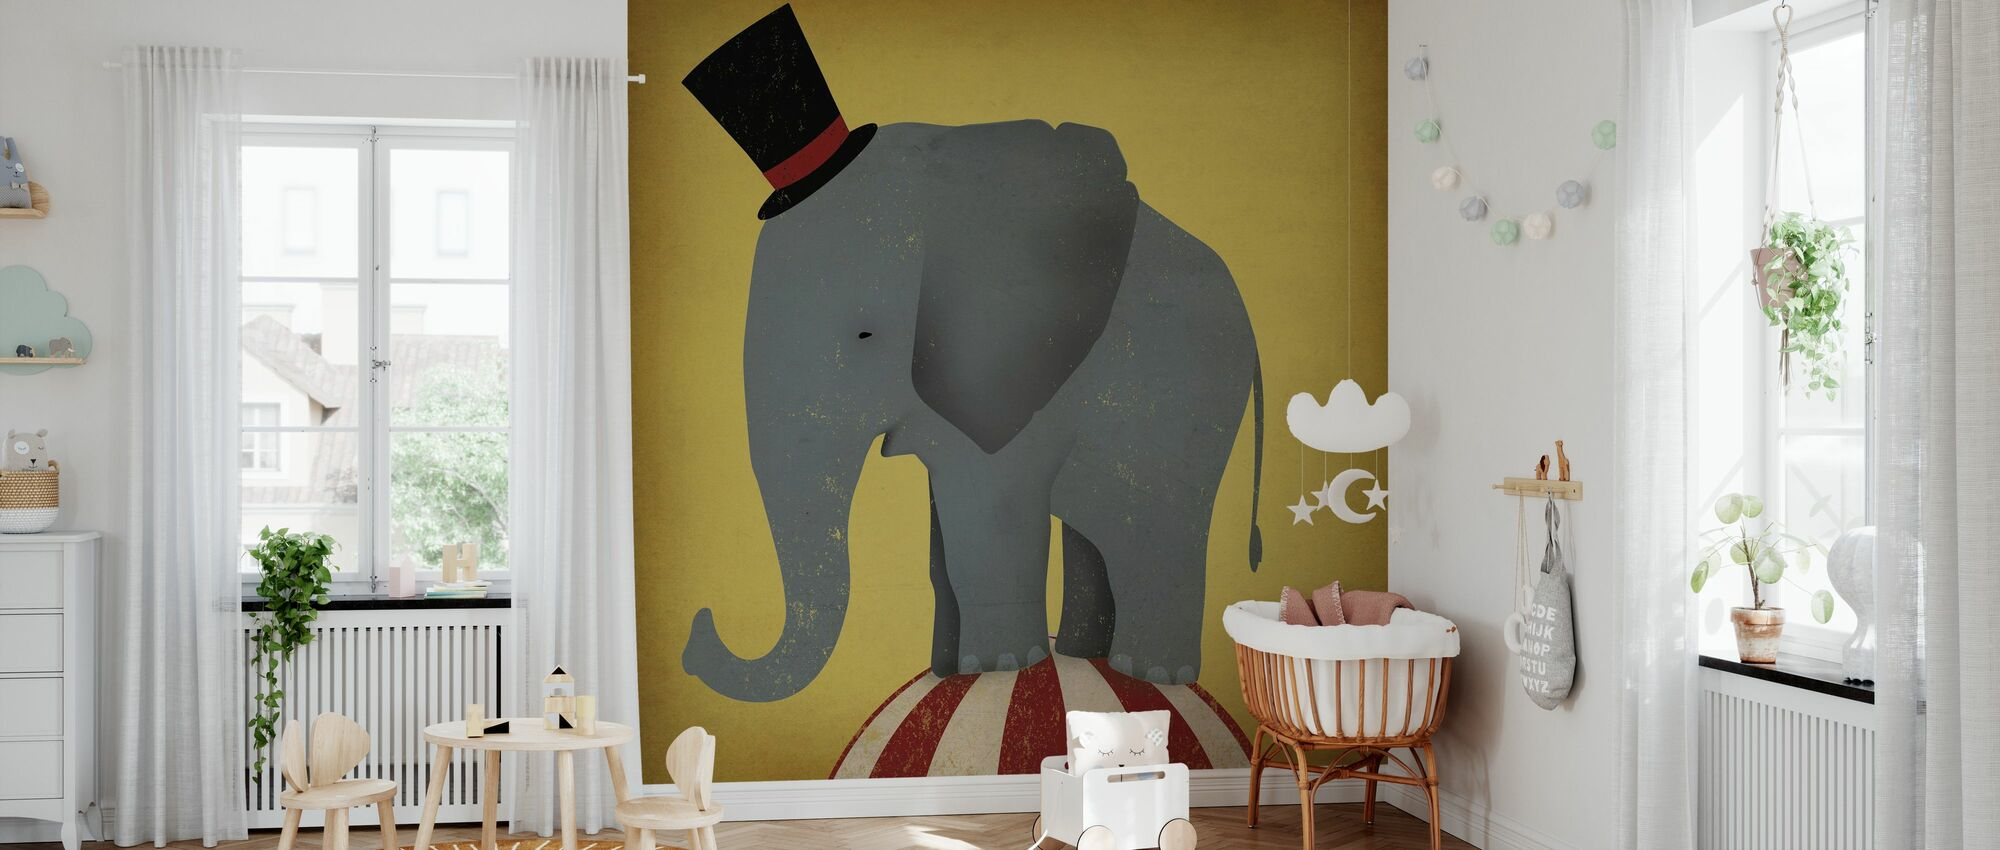 Circus Elephant - Wallpaper - Nursery